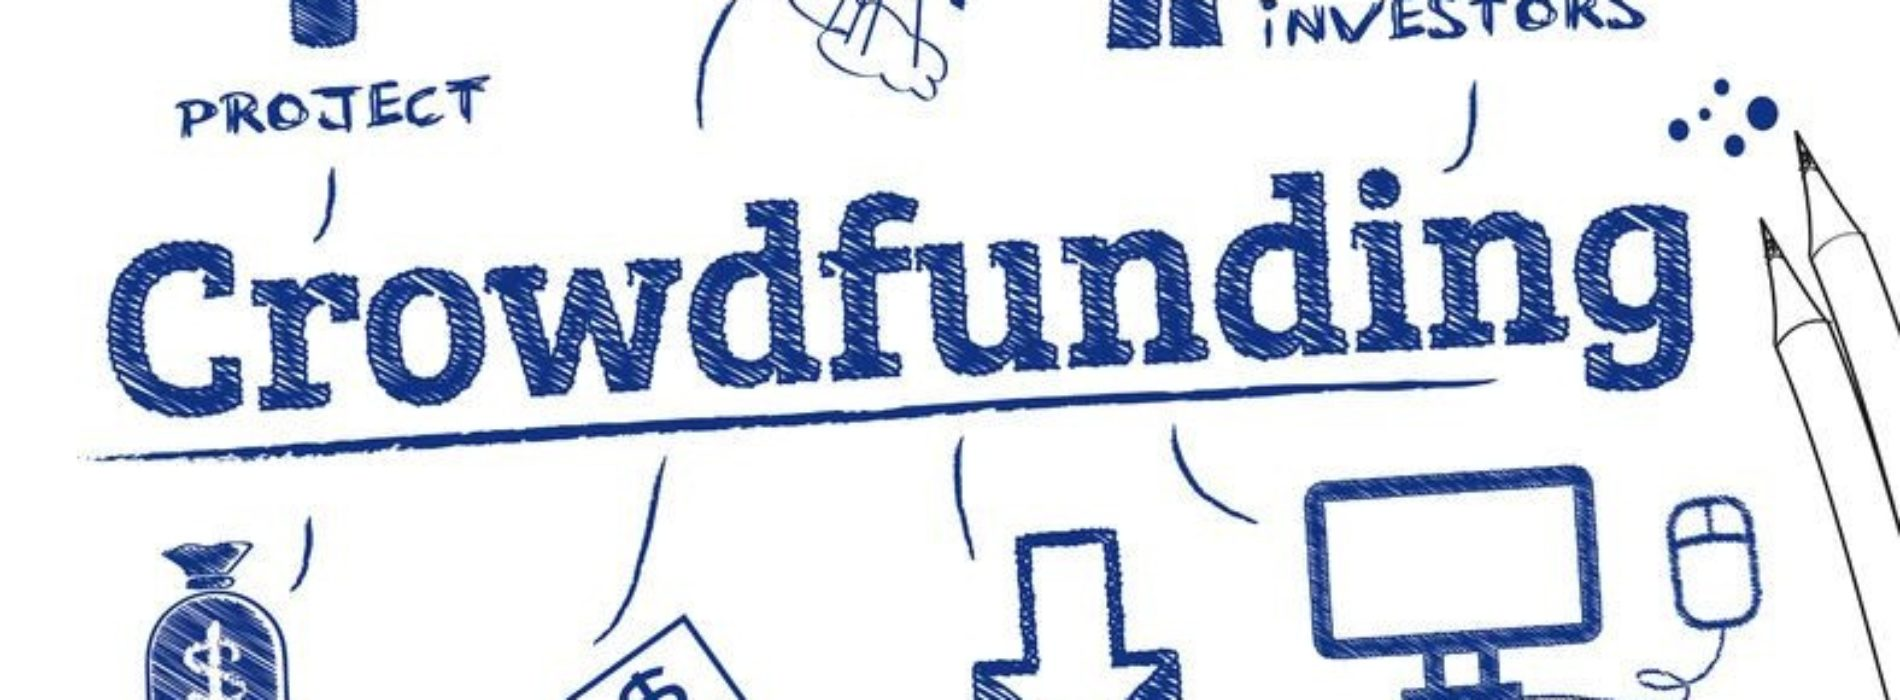 5 Tips on Crowdfunding Without a Social Media Presence